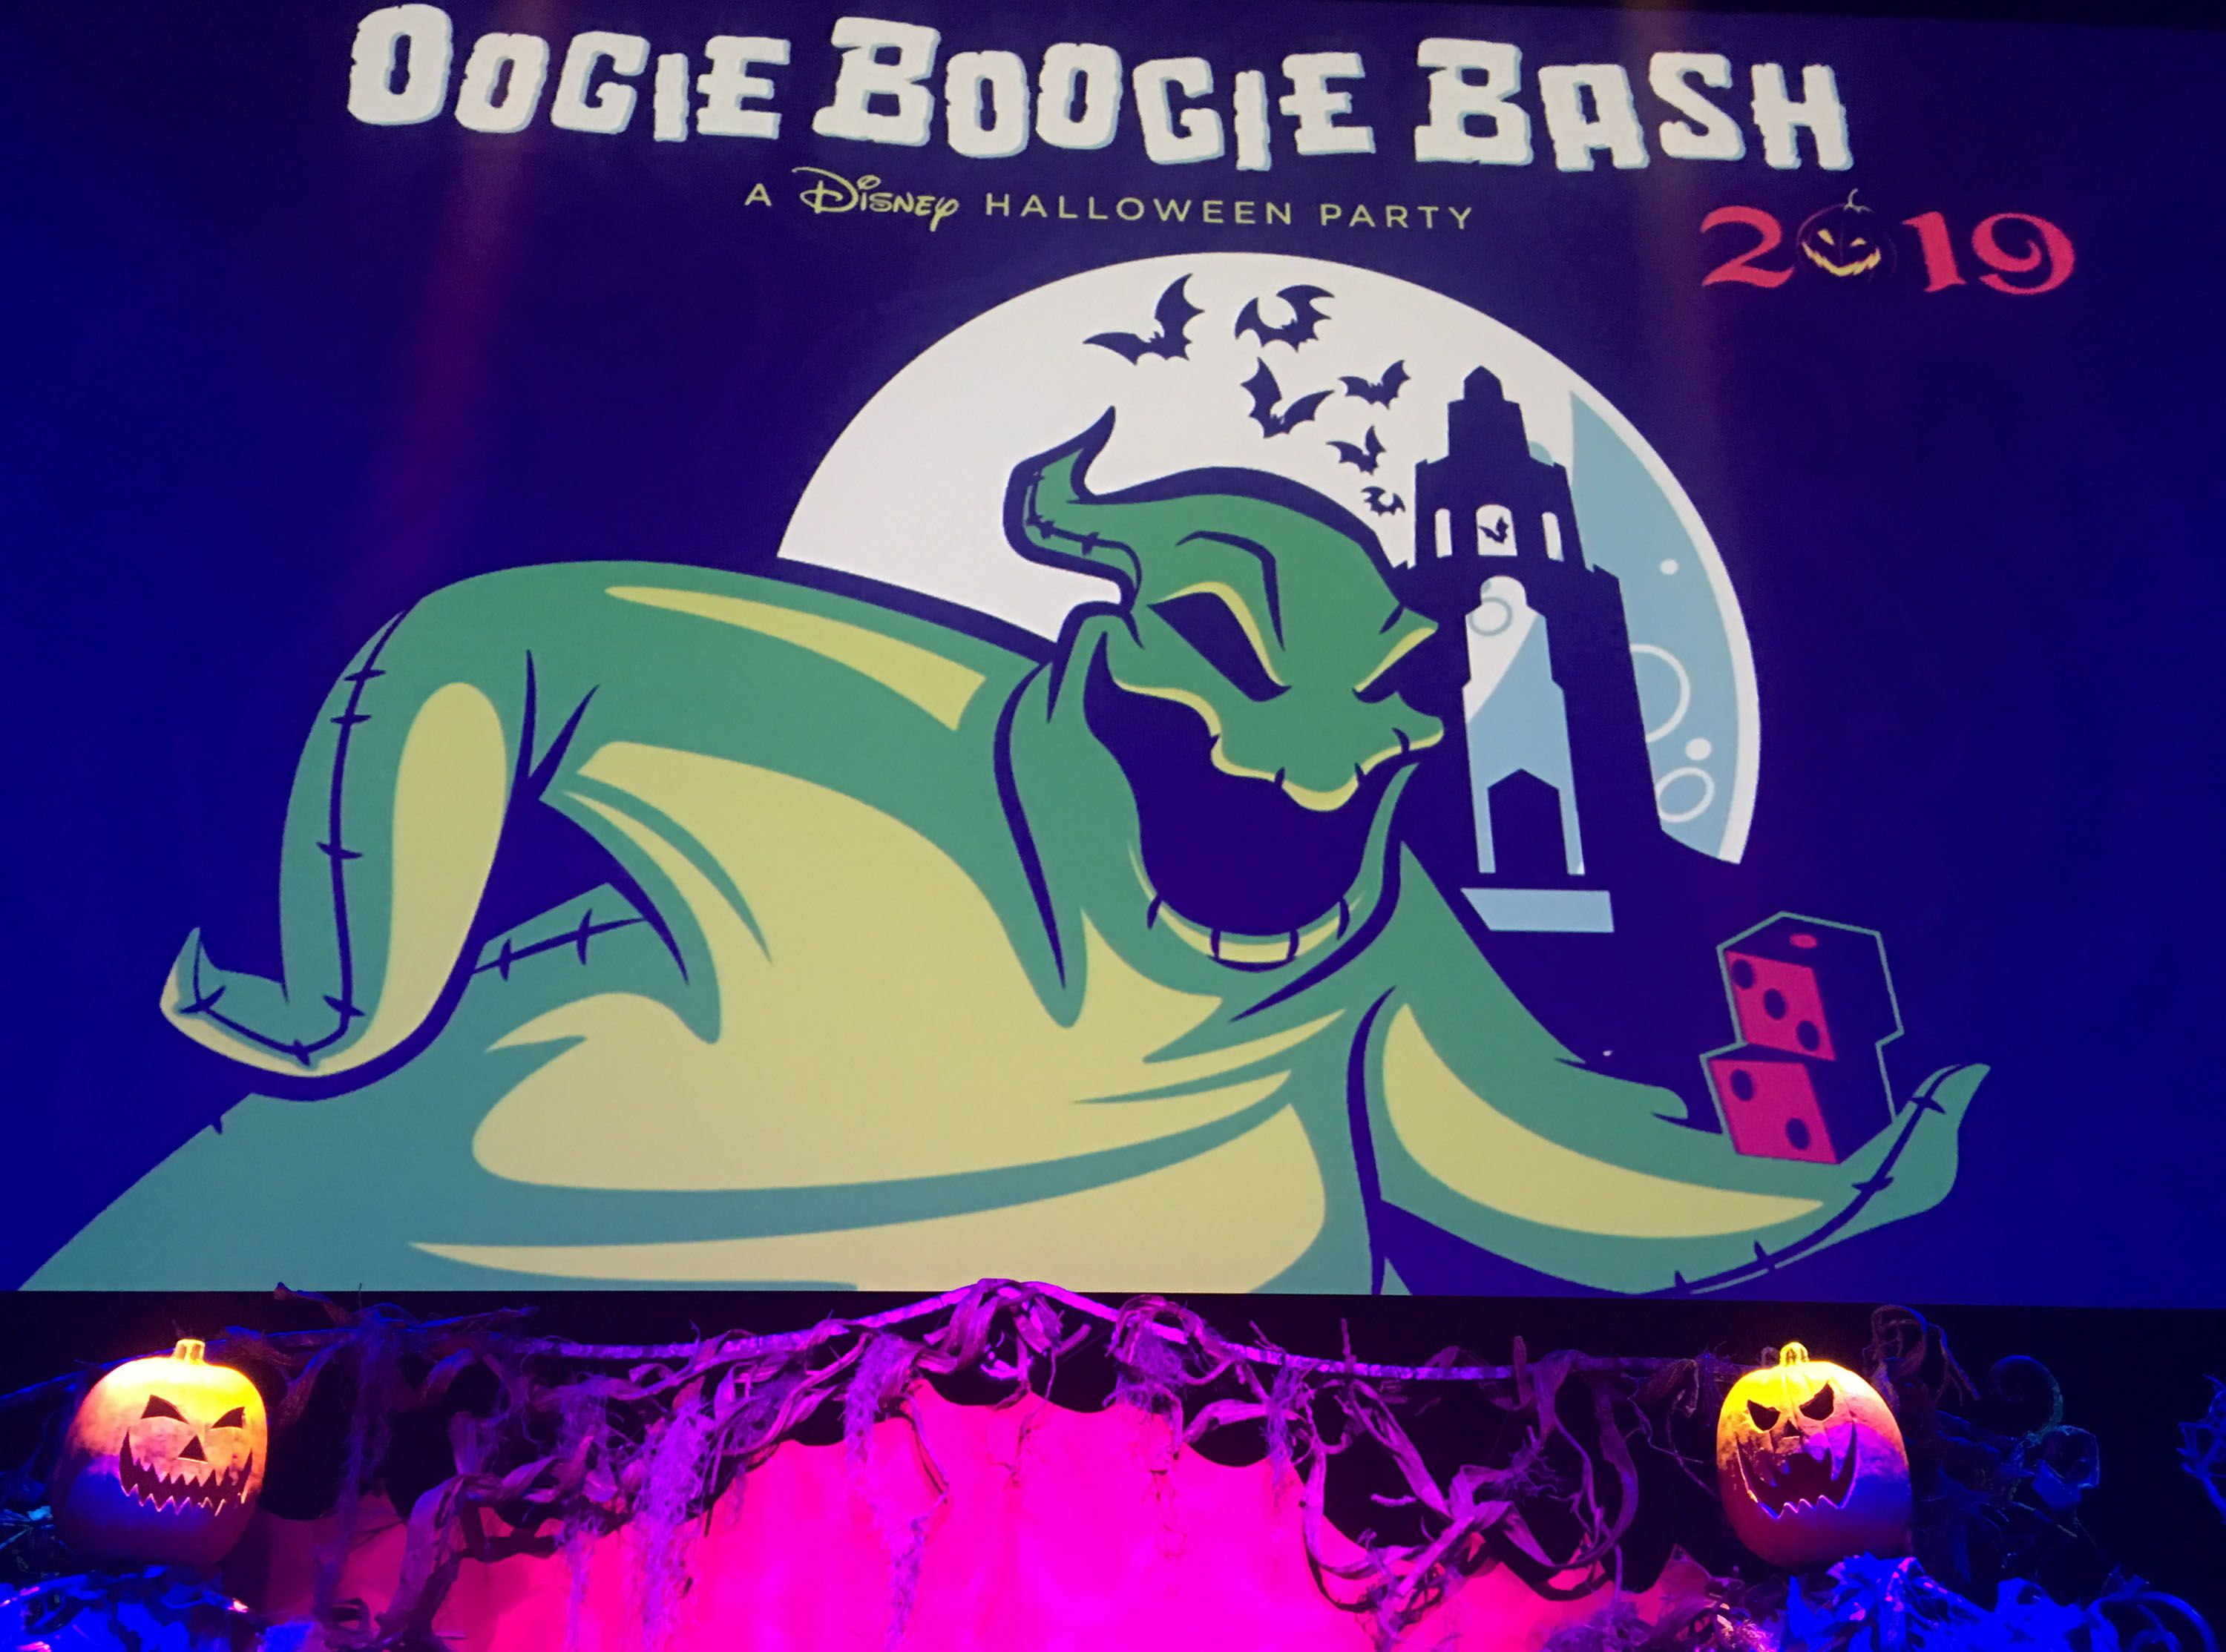 Oogie Boogie Halloween Party.Oogie Boogie Bash A Disney Halloween Party Images Show Off